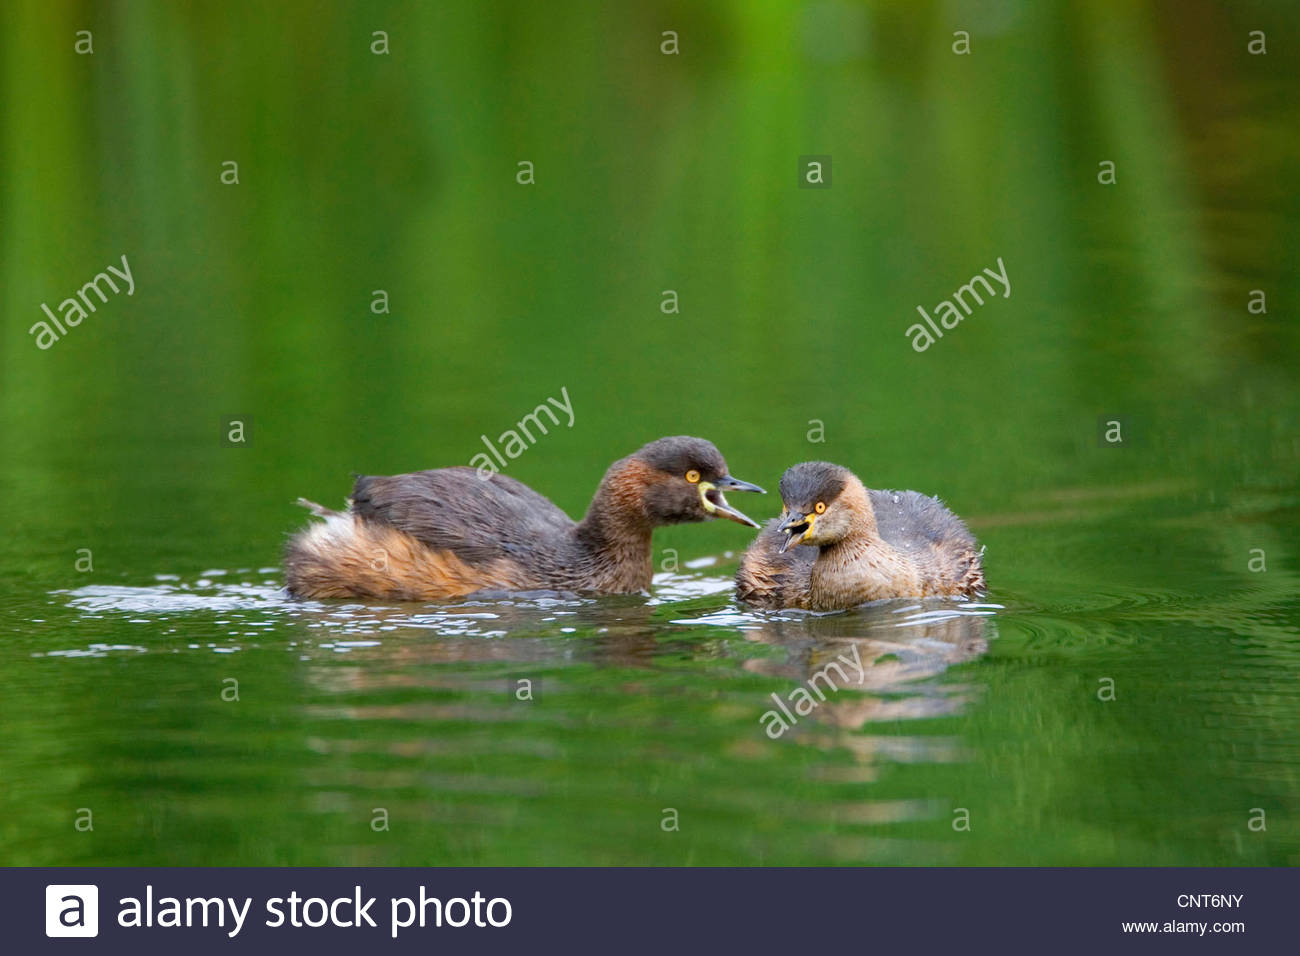 Australian dabchick (Tachybaptus novaehollandiae), two adult Australasian Grebe in breeding plumage communicating, - Stock Image